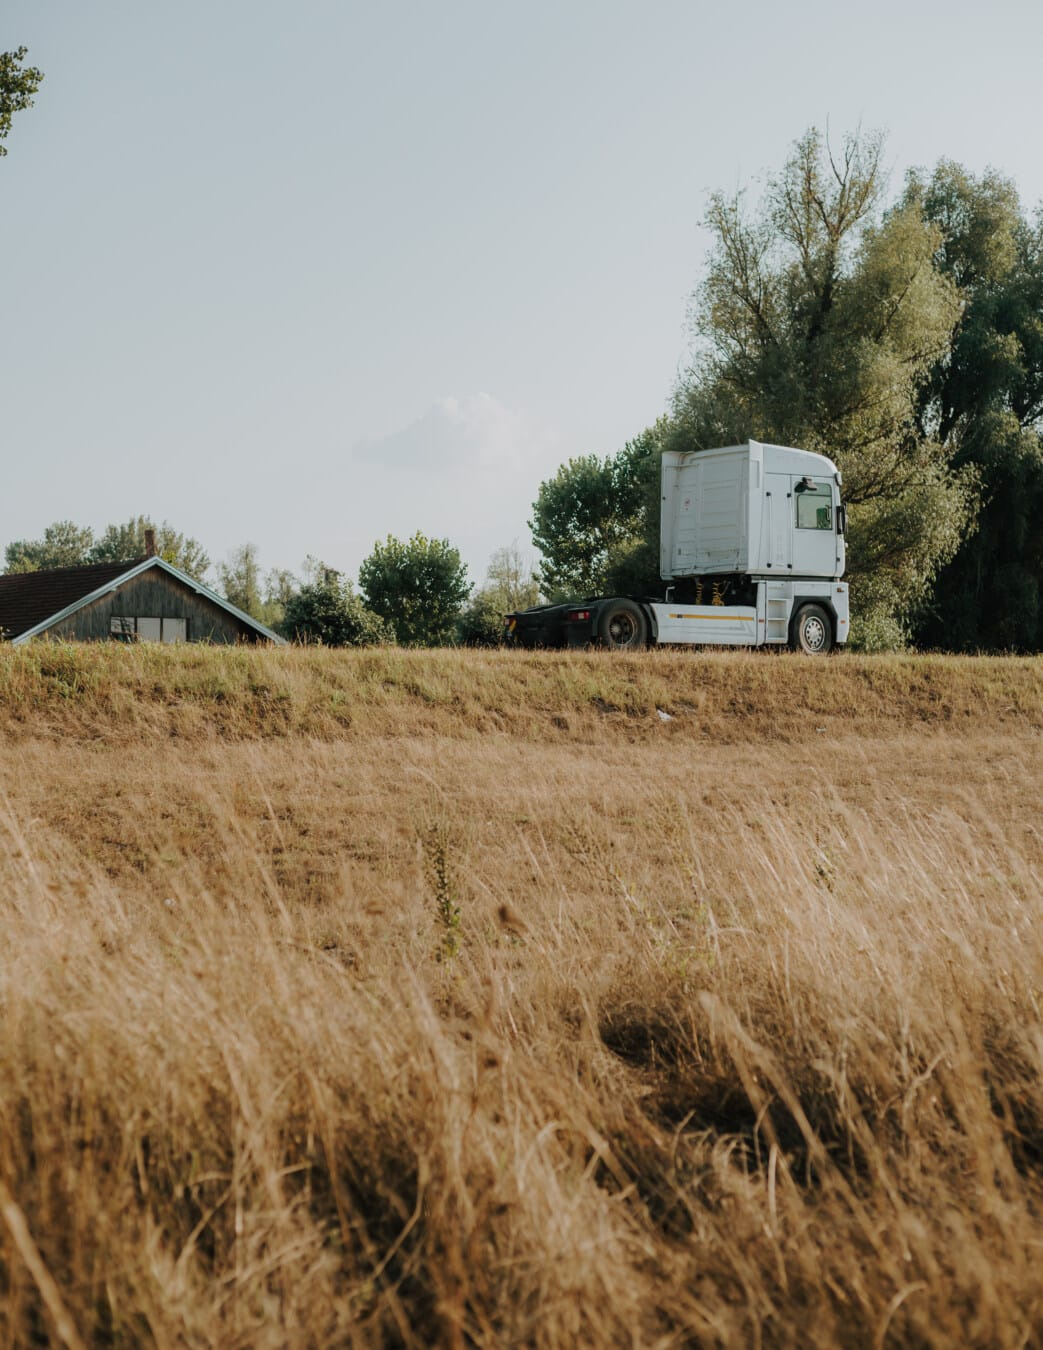 white, truck, aspen, hill, agriculture, nature, rural, countryside, tree, outdoors